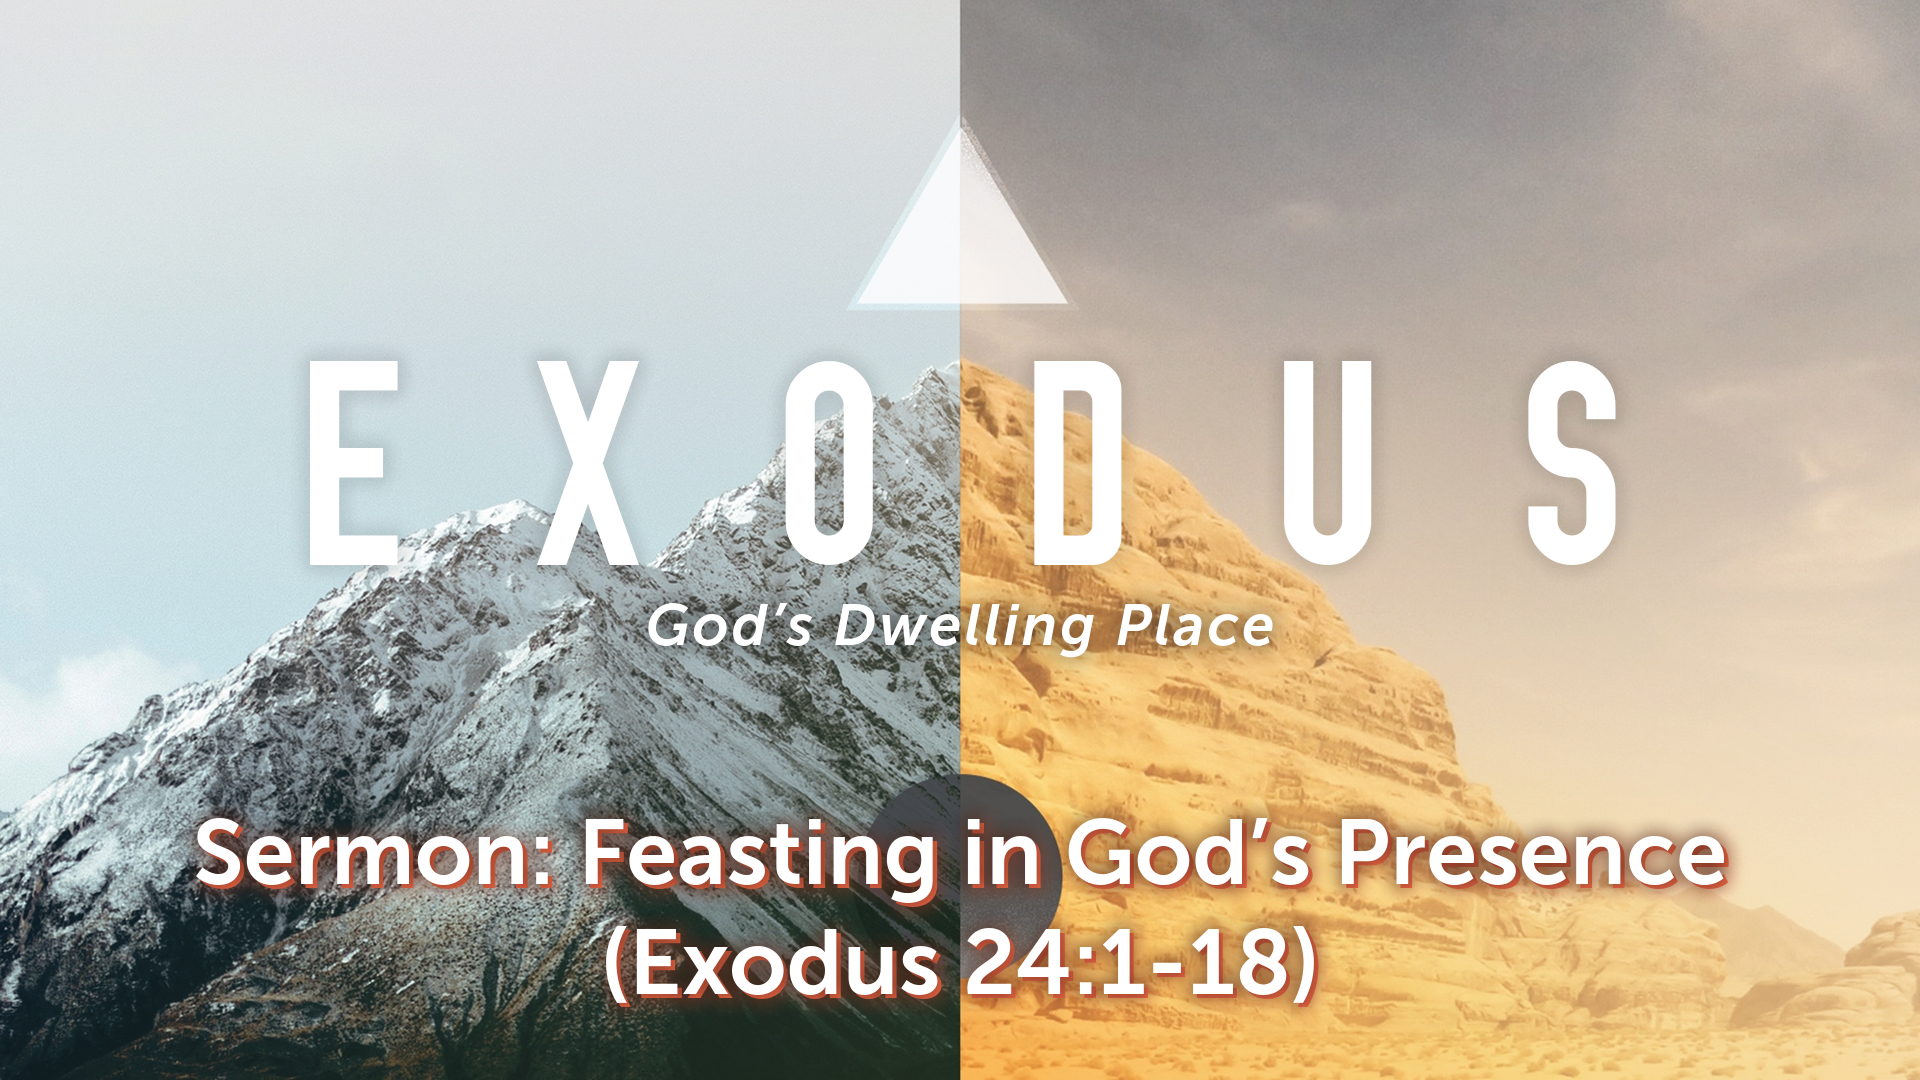 Image for the sermon Feasting in God's Presence